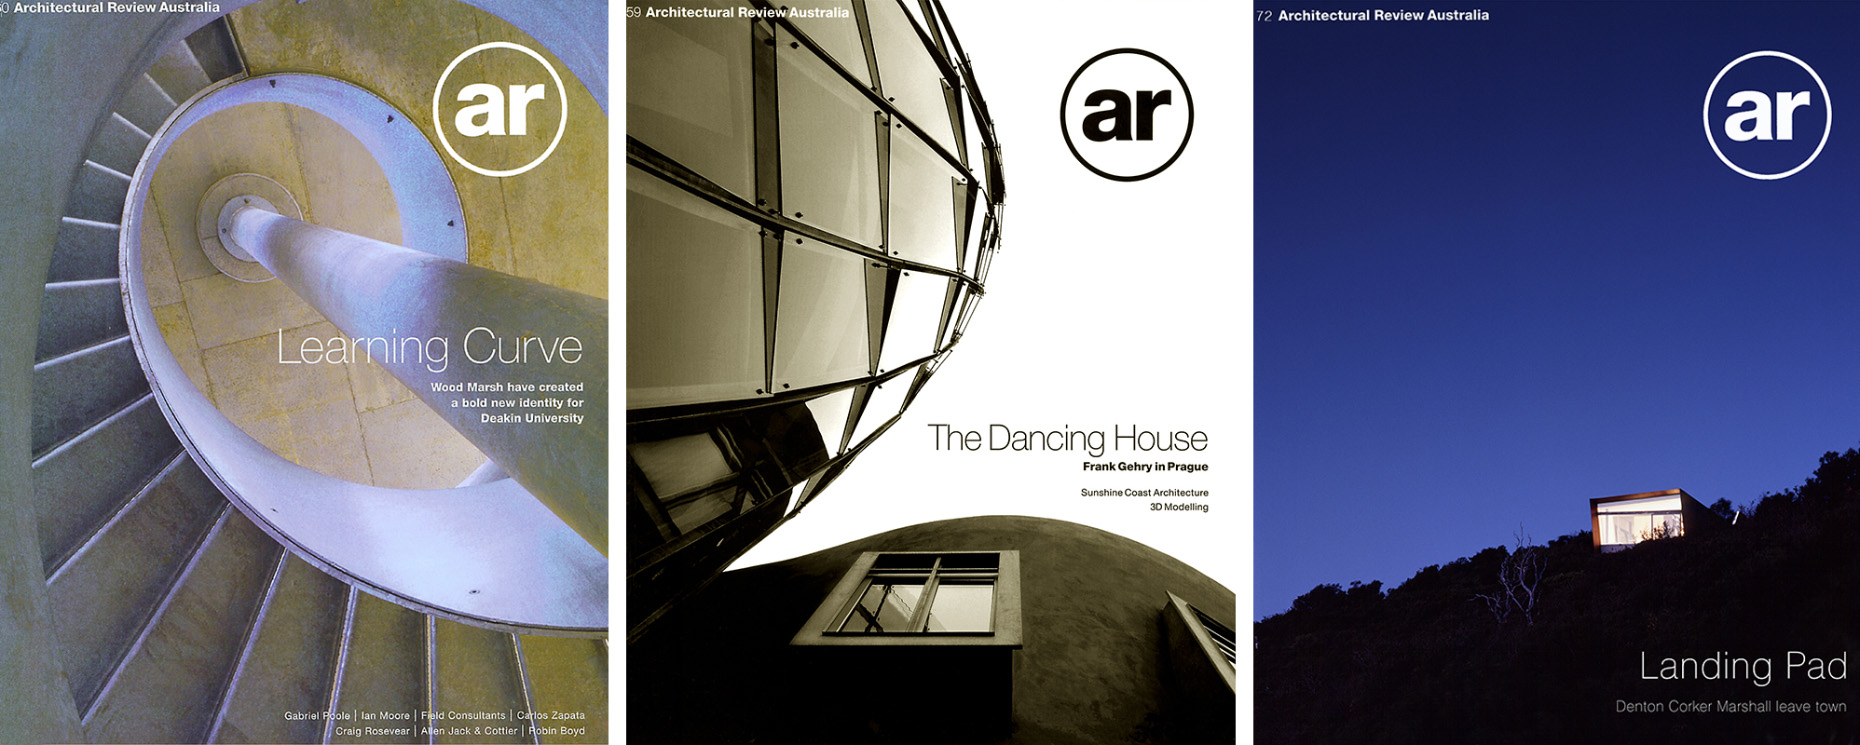 ARCHREVIEW